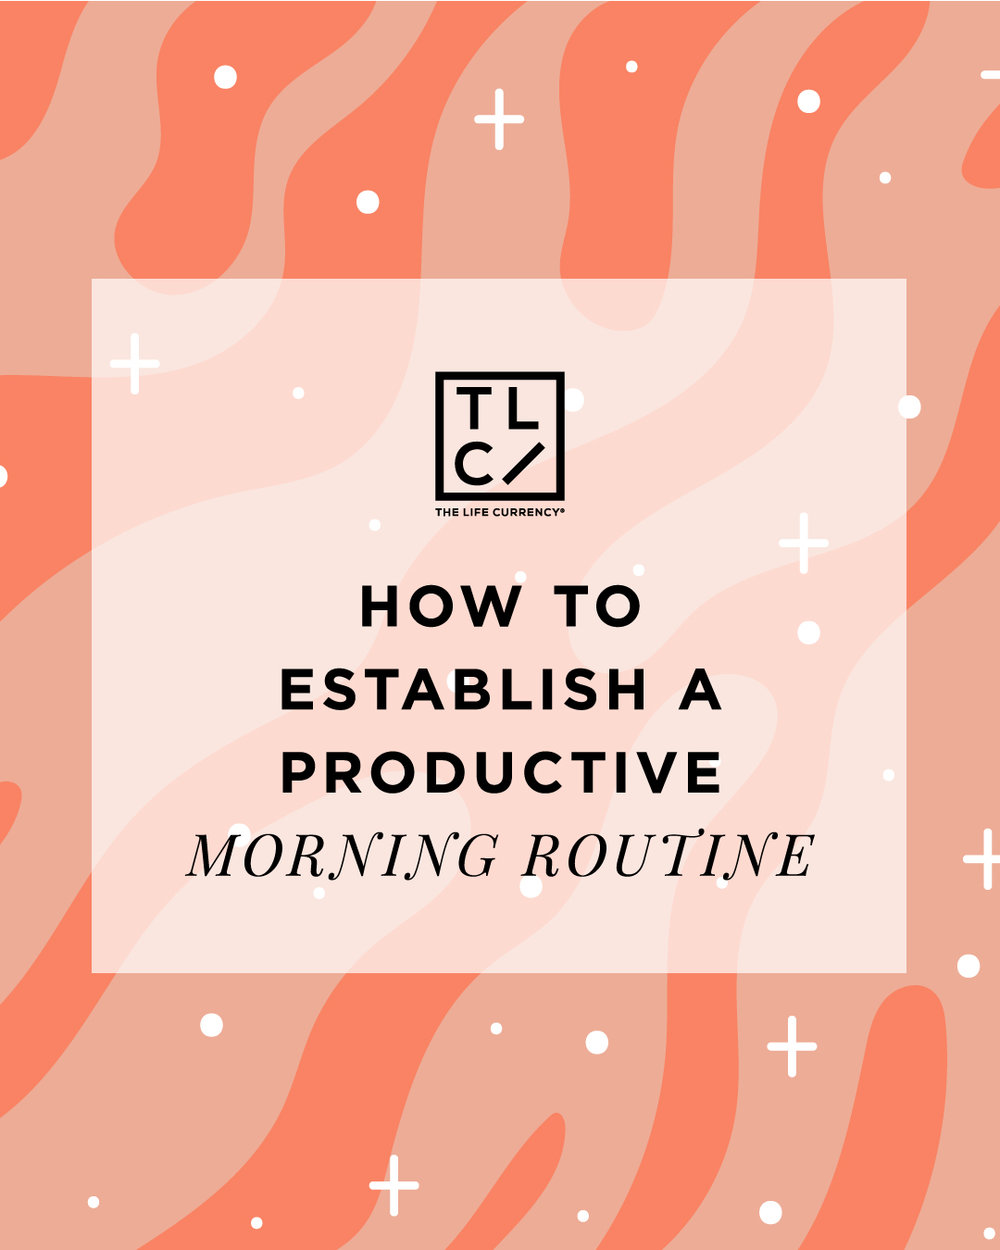 morning-routine-pin.jpg